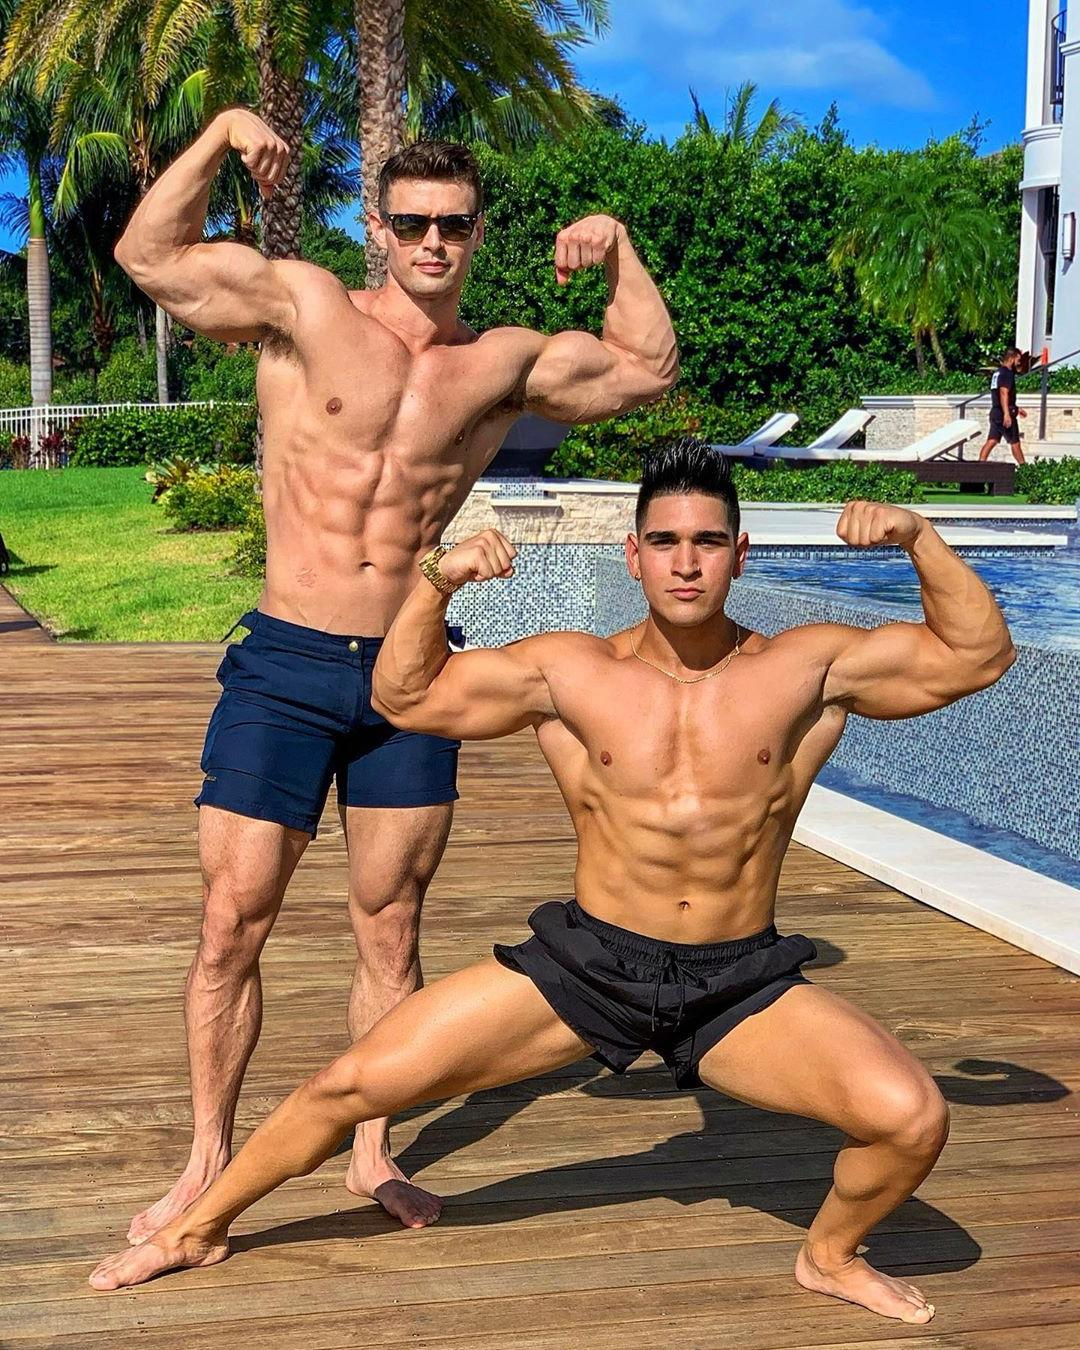 sexy-shirtless-muscular-bodybuilders-strong-biceps-flex-straight-swole-hunks